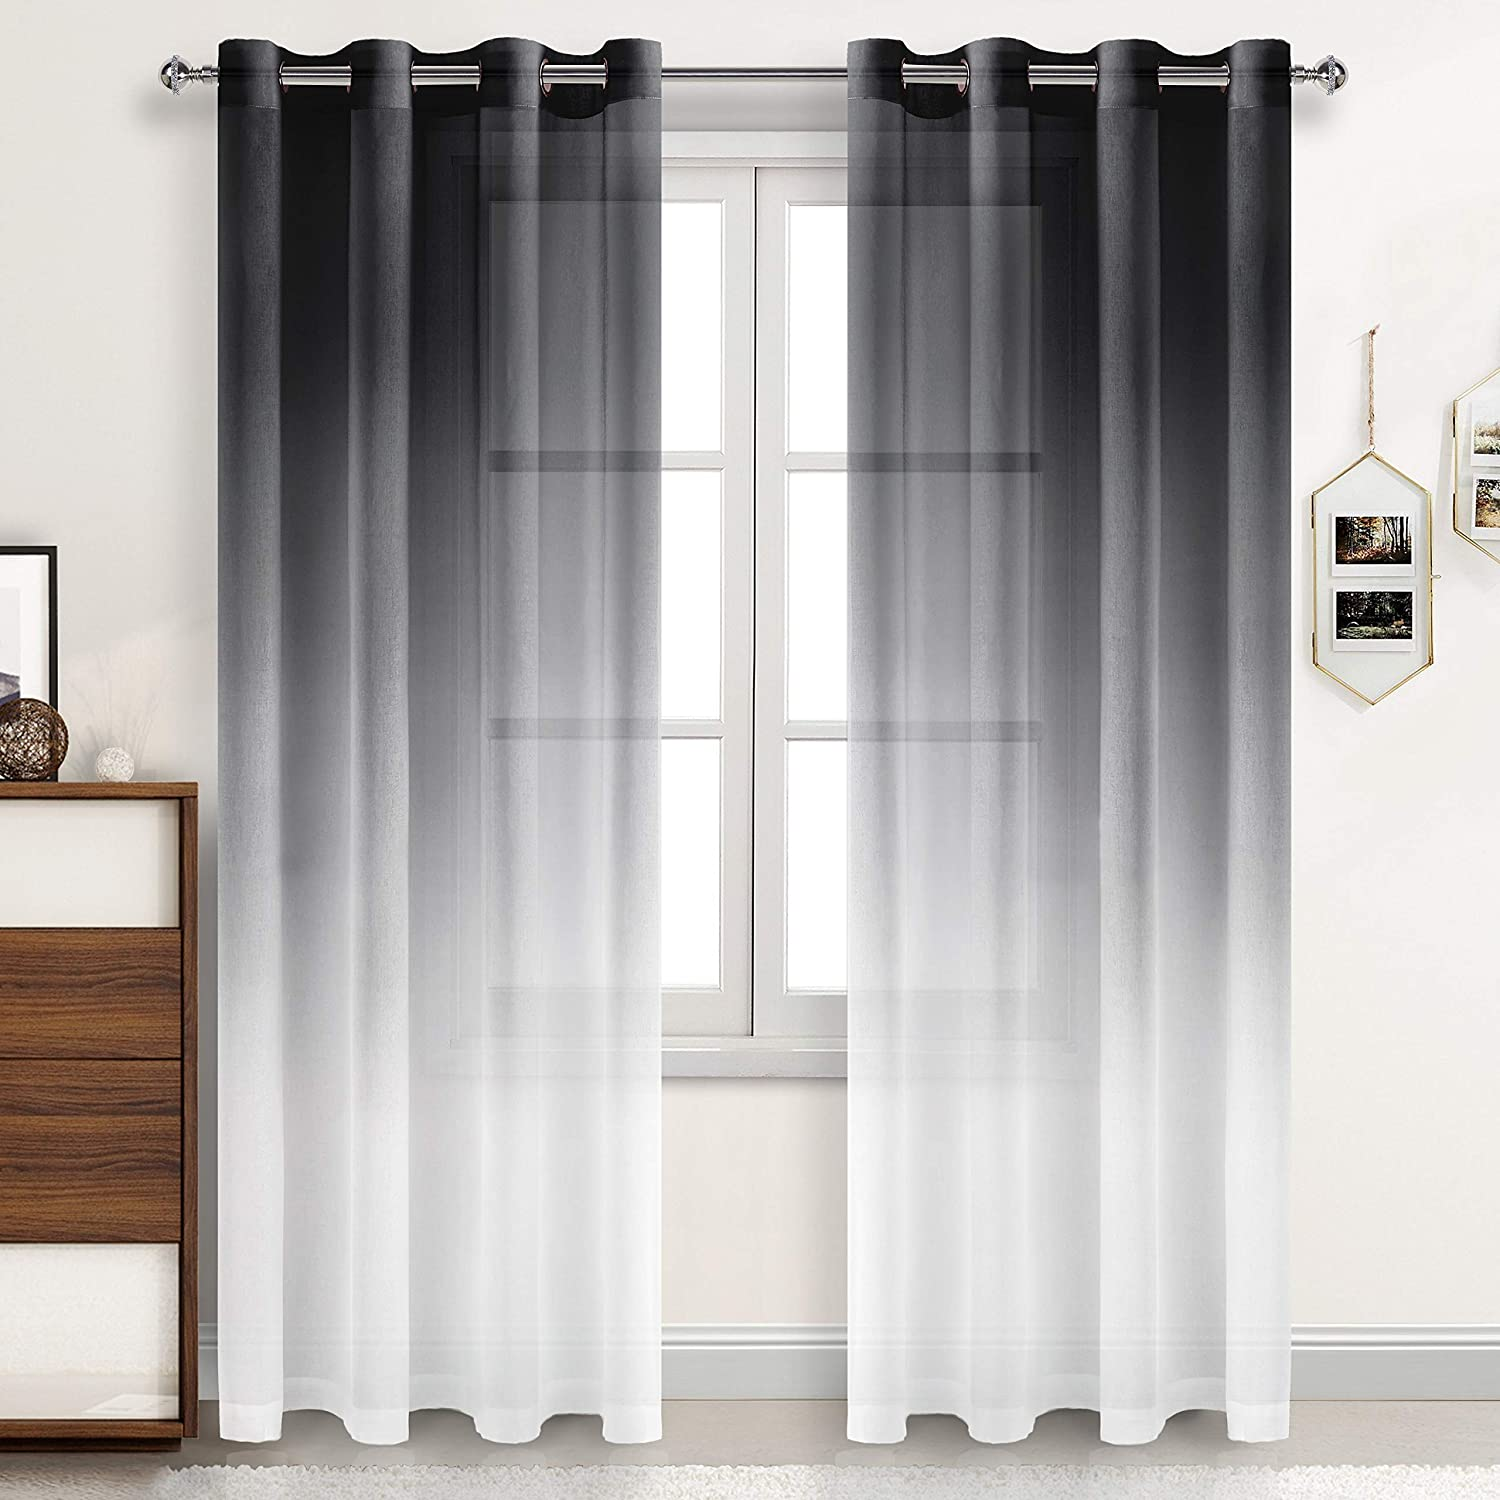 DWCN Ombre Sheer Curtains - Faux Linen Semi Voile Grommet Top Curtains for Bedroom and Living Room, Set of 2 Gradient Window Curtain Panels, 52 x 96 Inches Long, Black